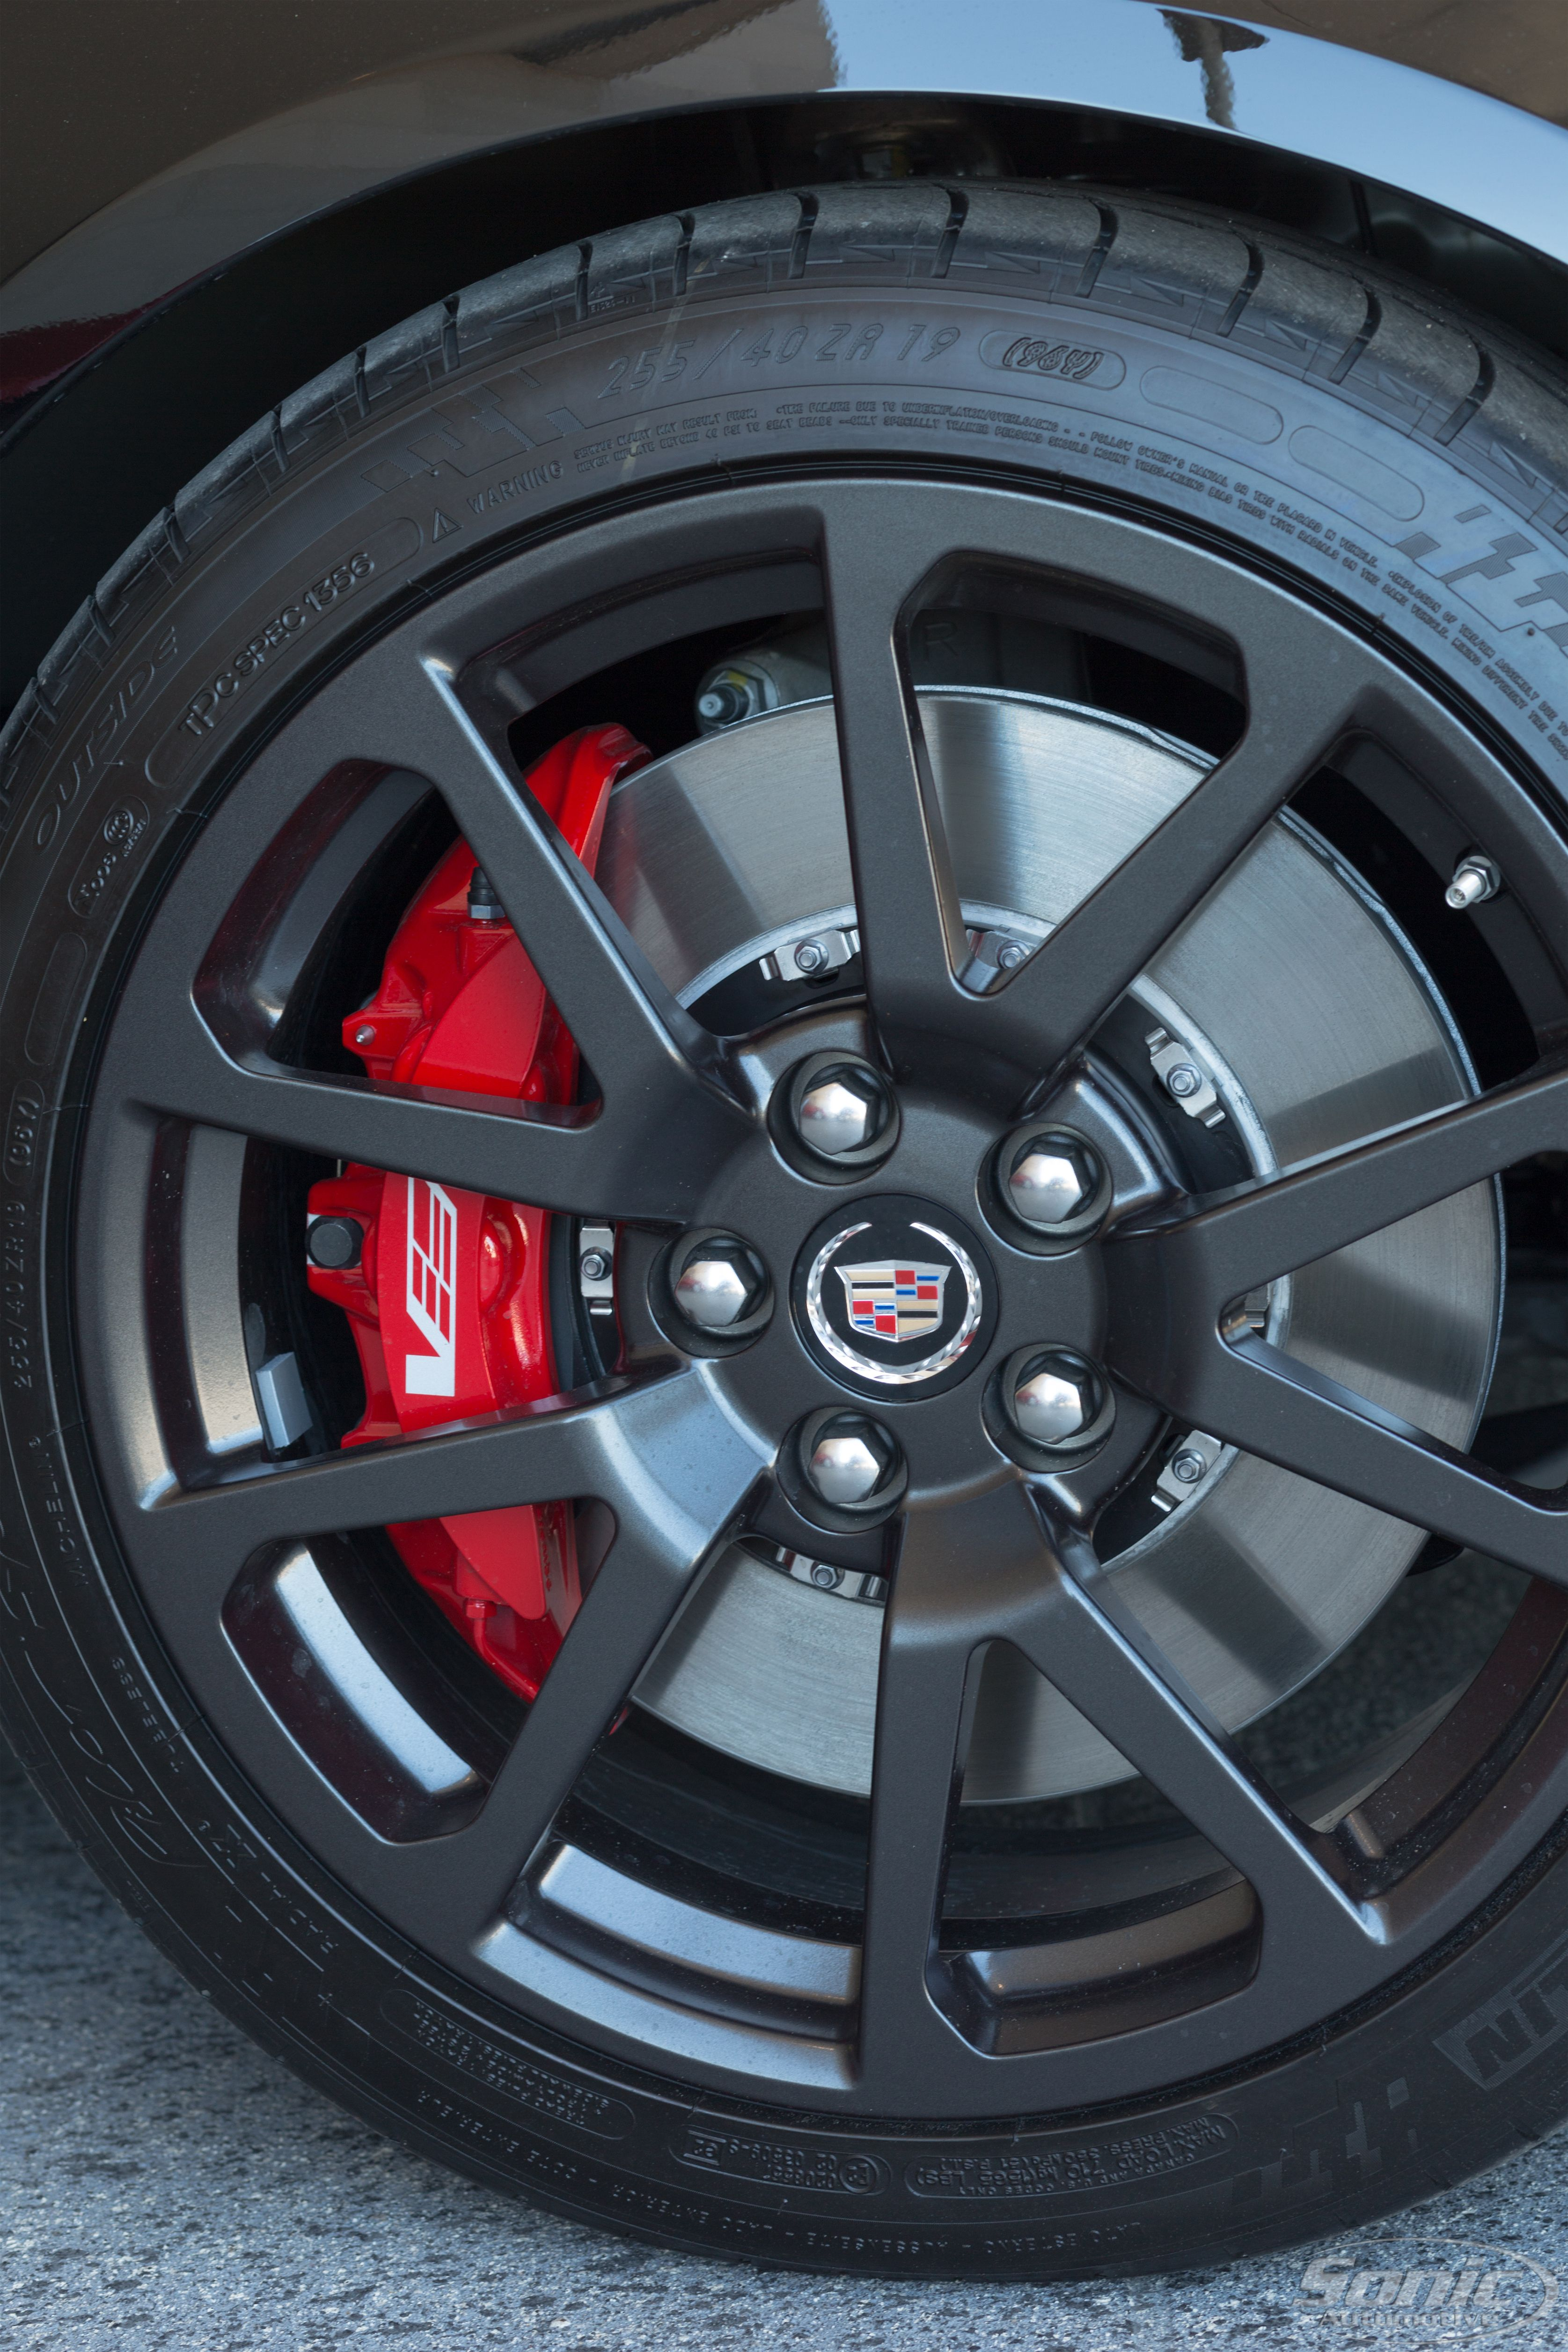 Unleash the beast within and let your Cadillac roar.